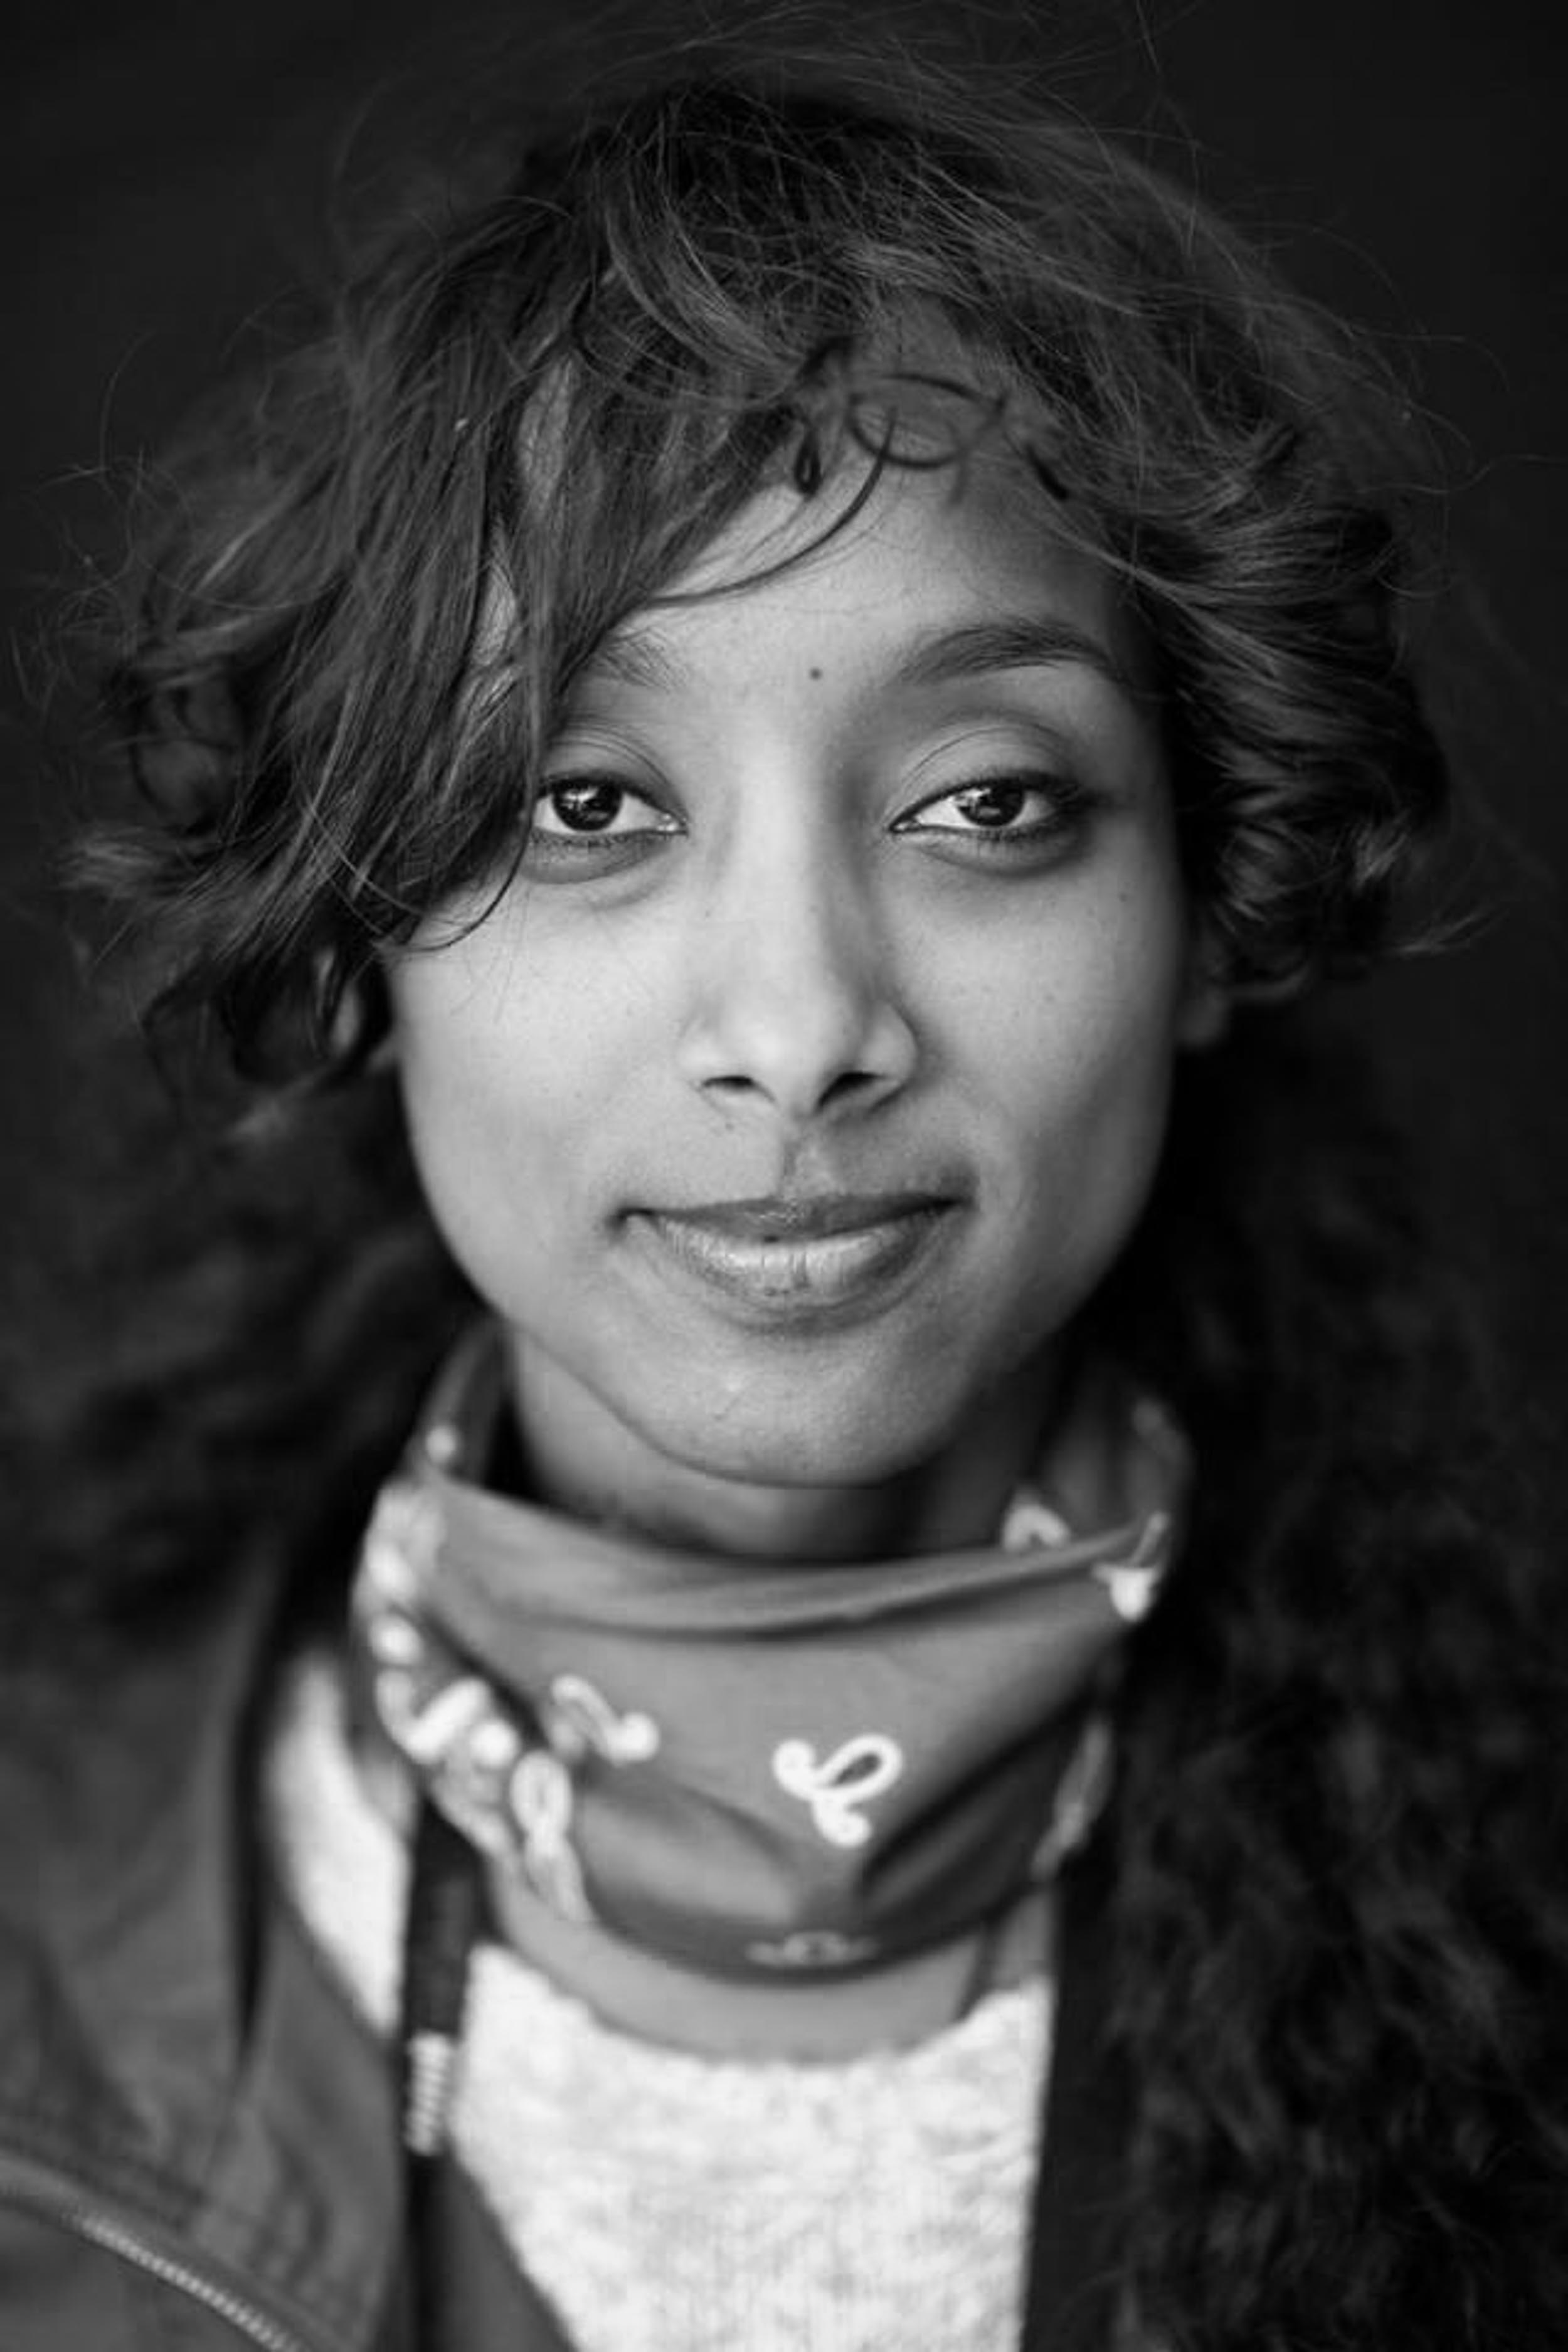 Hilina Abebe - Born and raised in Ethiopia, Hilina Abebe is a self-taught documentary photographer. She combines her background in journalism and social work to explore issues in her story telling. Her first personal project was published by CNN in 2016, and her work was also published in 'MFON: Women Photographers of the African Diaspora'. Abebe is an Eddie Adams Workshop XXIX Alum. In 2016, she participated in the New York Times Portfolio Review and the World Press Photo East Africa Masterclass. She was also nominated for the 2017 Joop Swart Masterclass.